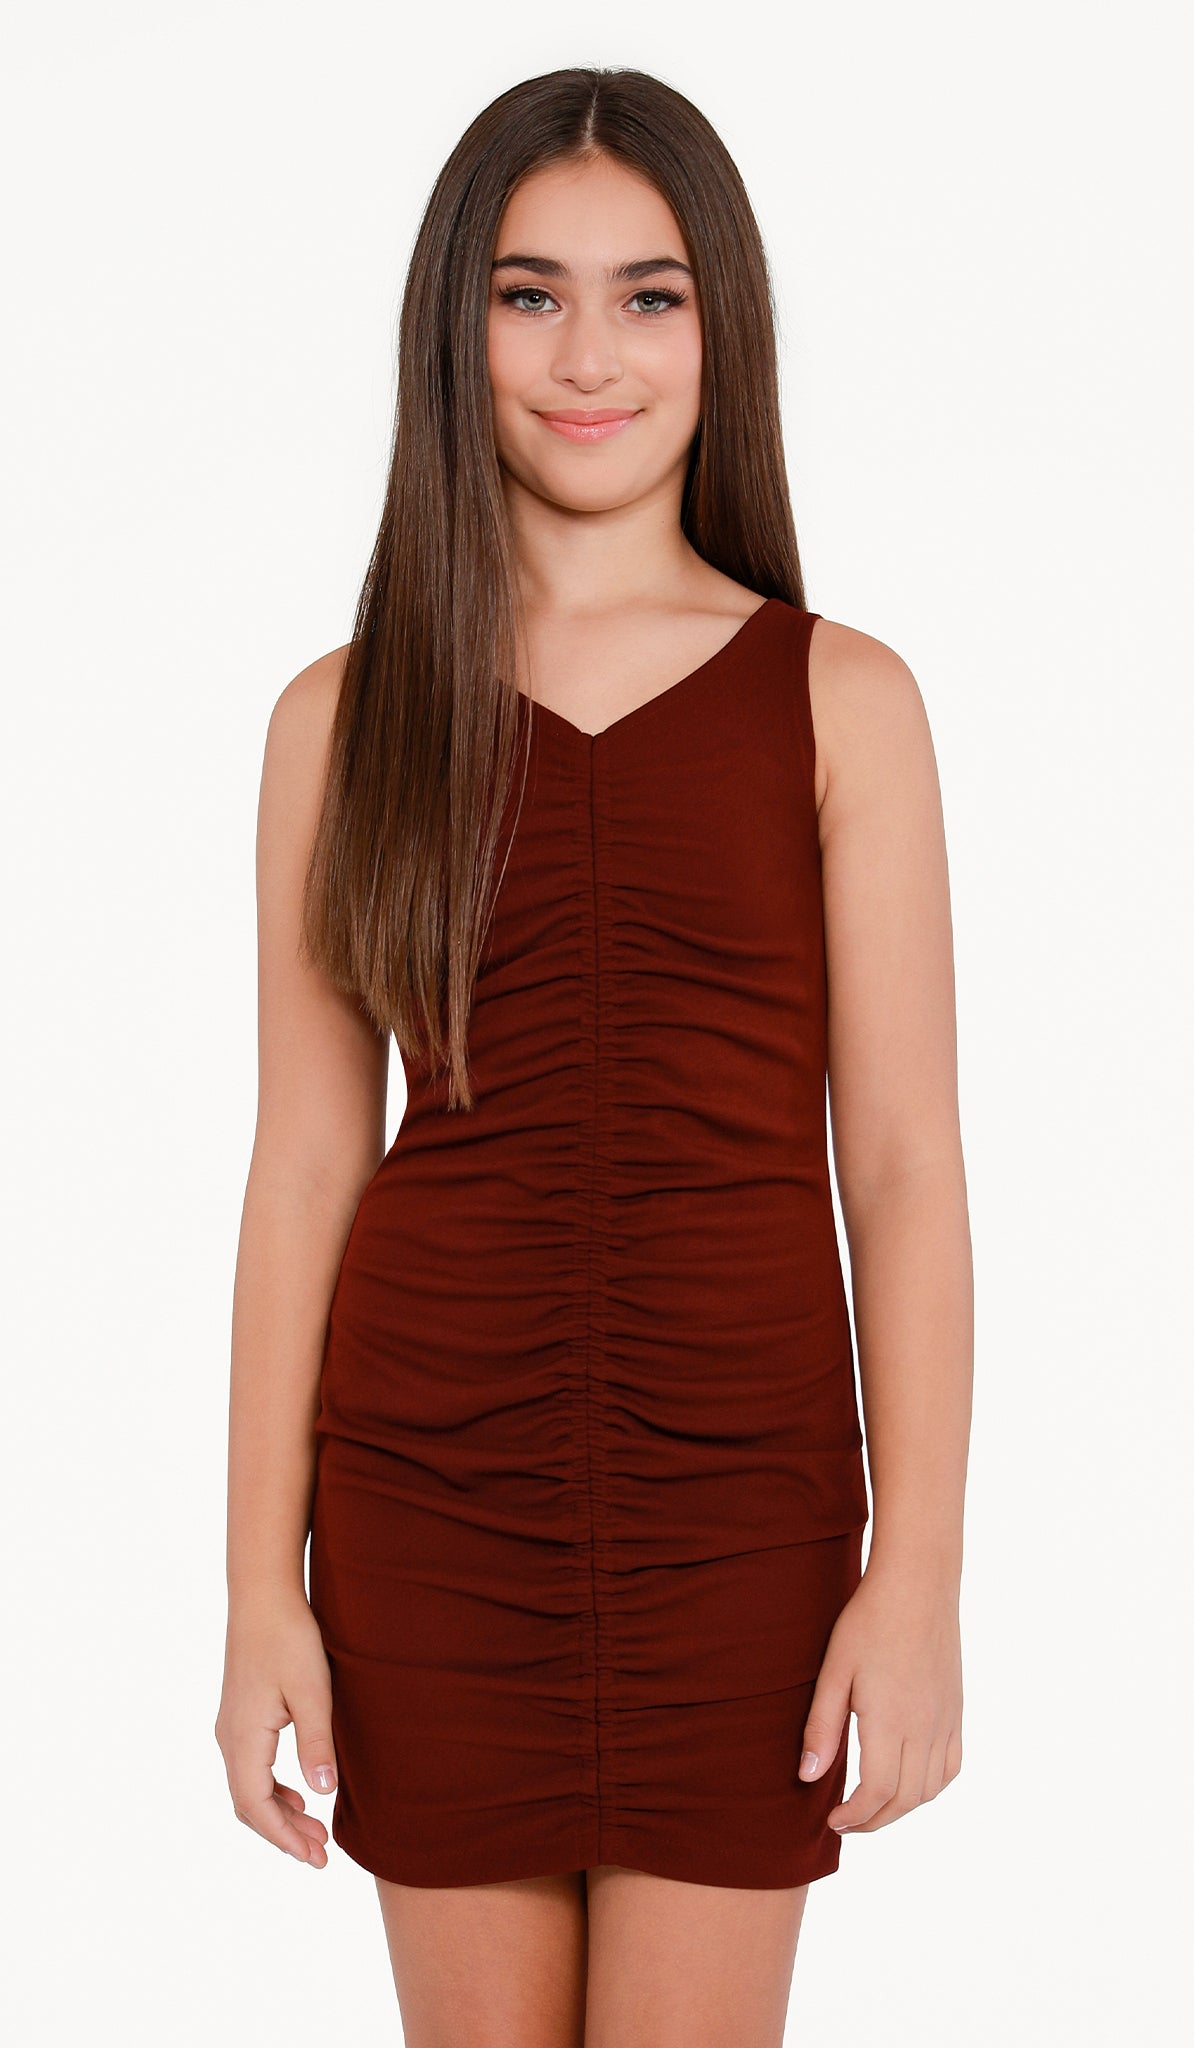 The Sally Miller Deb Dress | Bordeaux stretch crepe georgette body con dress with center front rouching